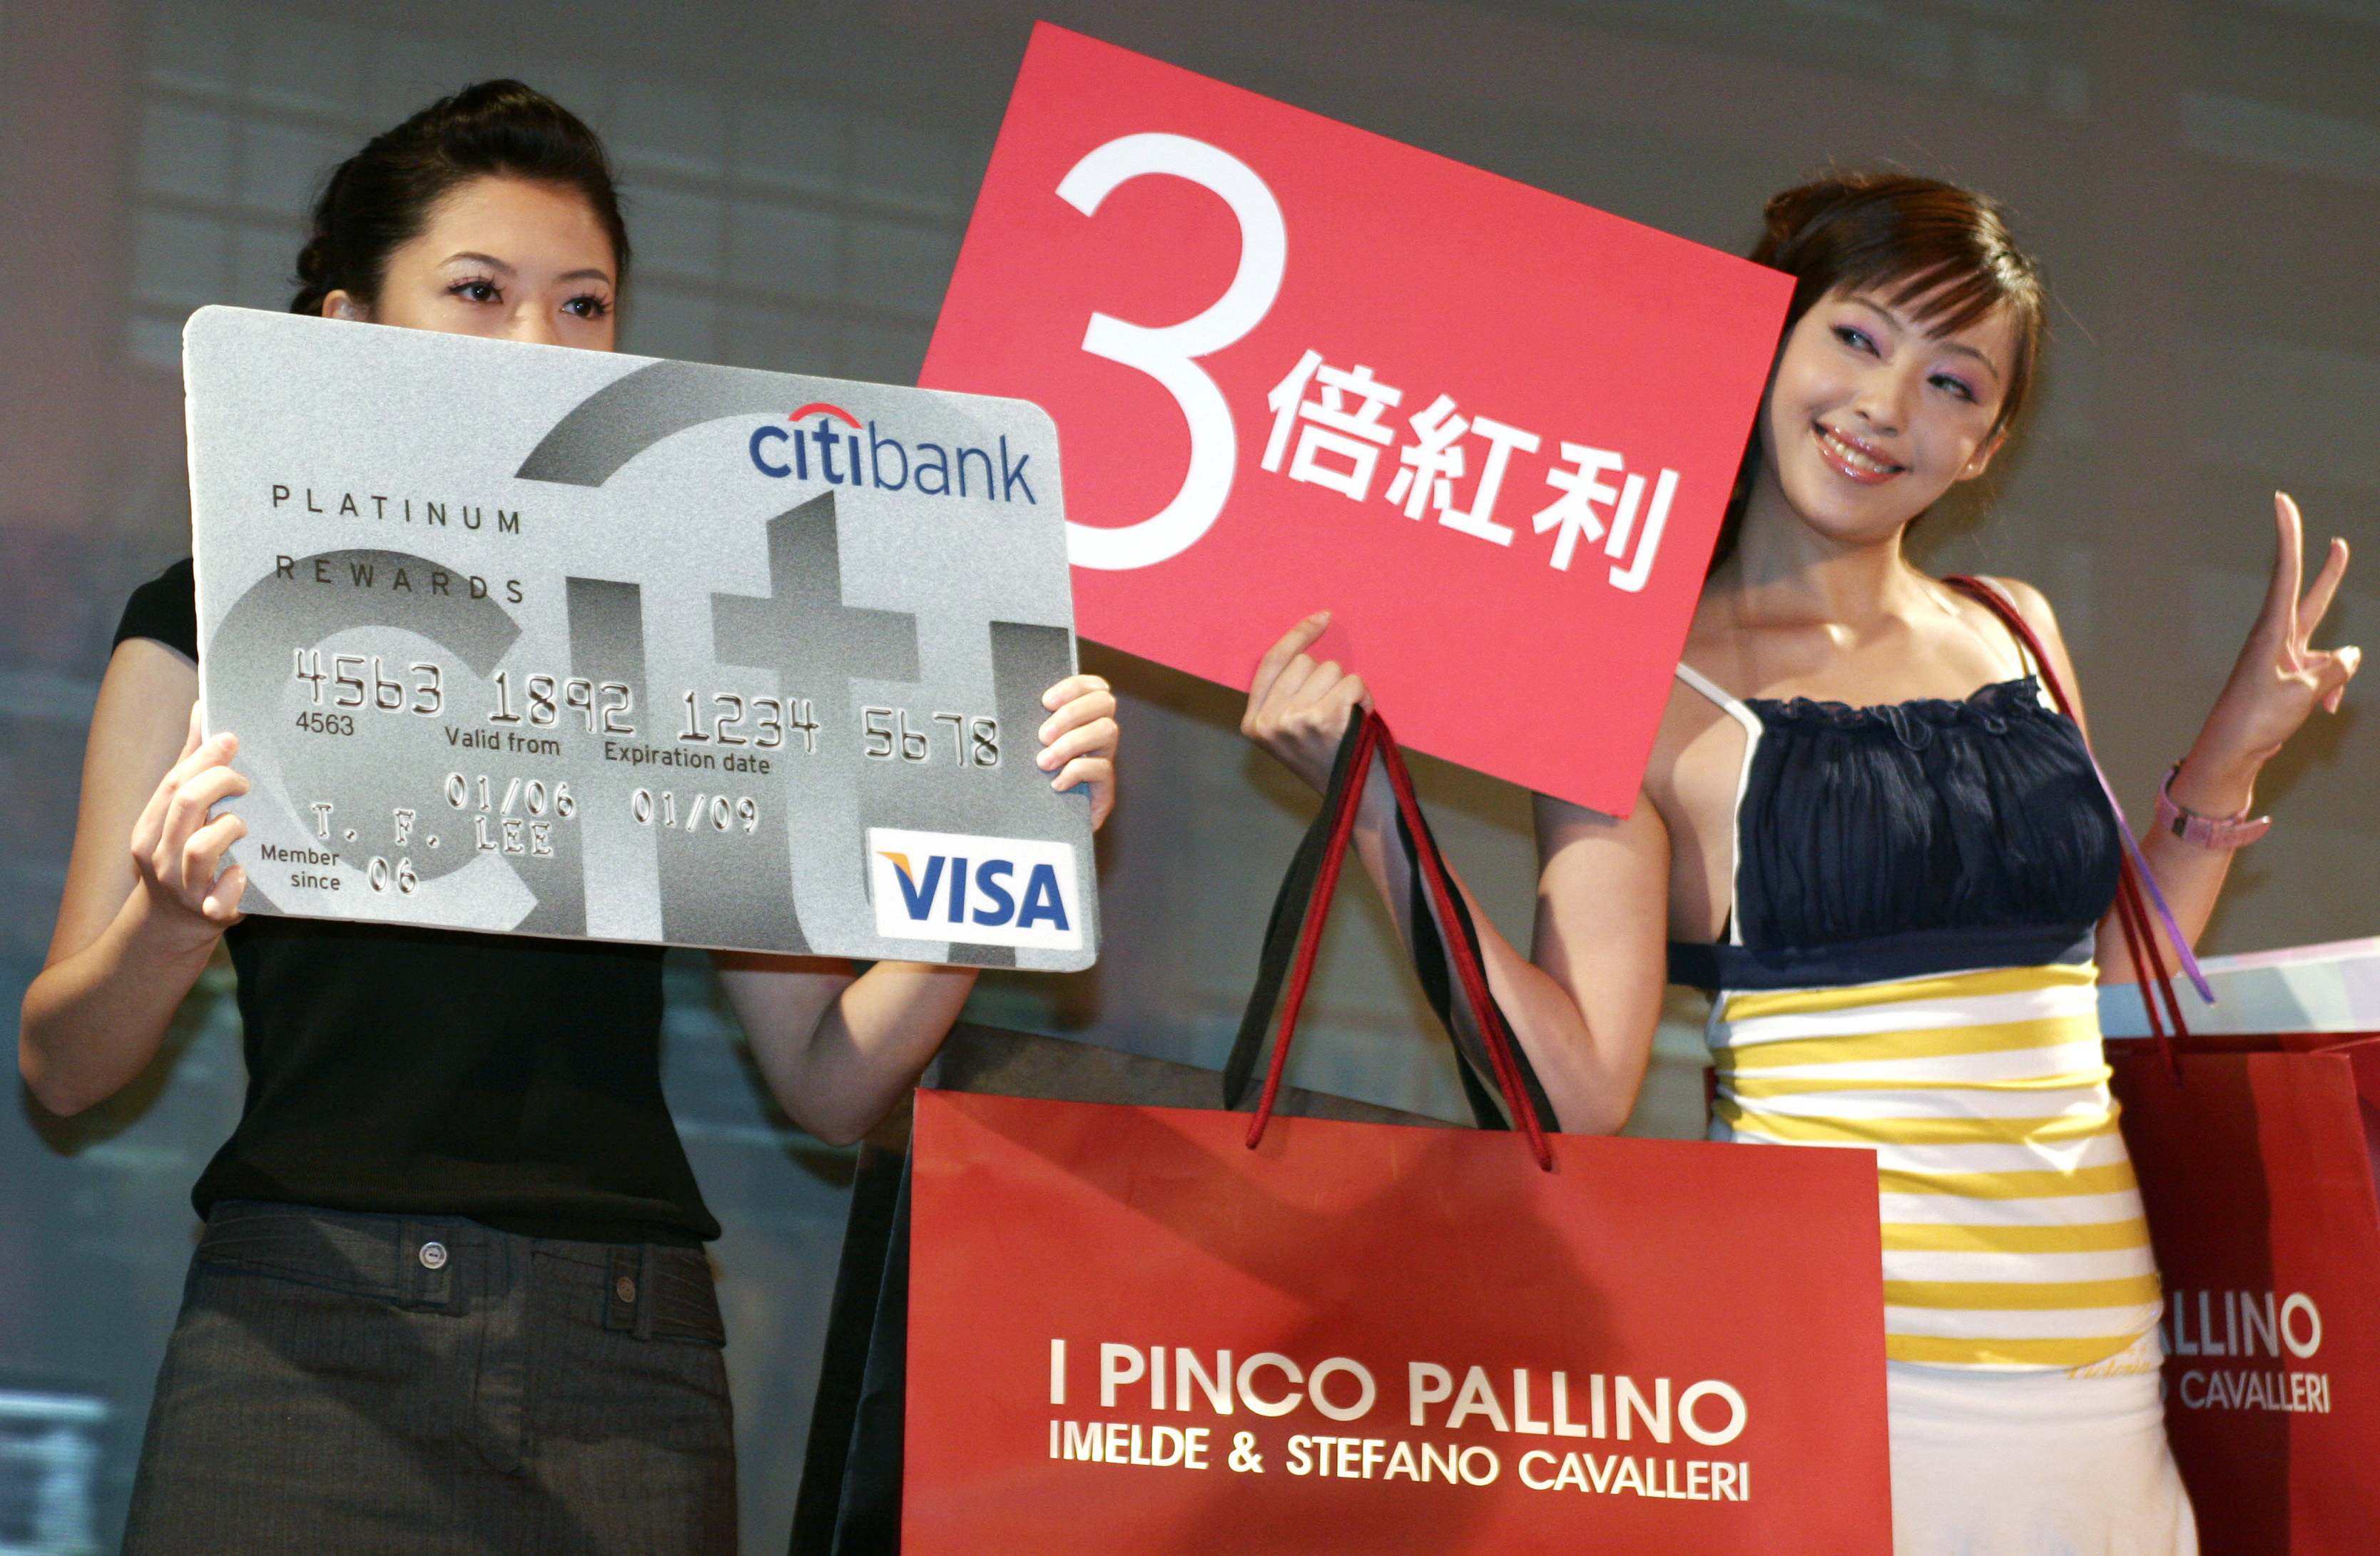 Members of Citibank Taiwan play a skit to promote its Platinum Rewards Card during a press conference in Taipei on Oct. 04, 2006.